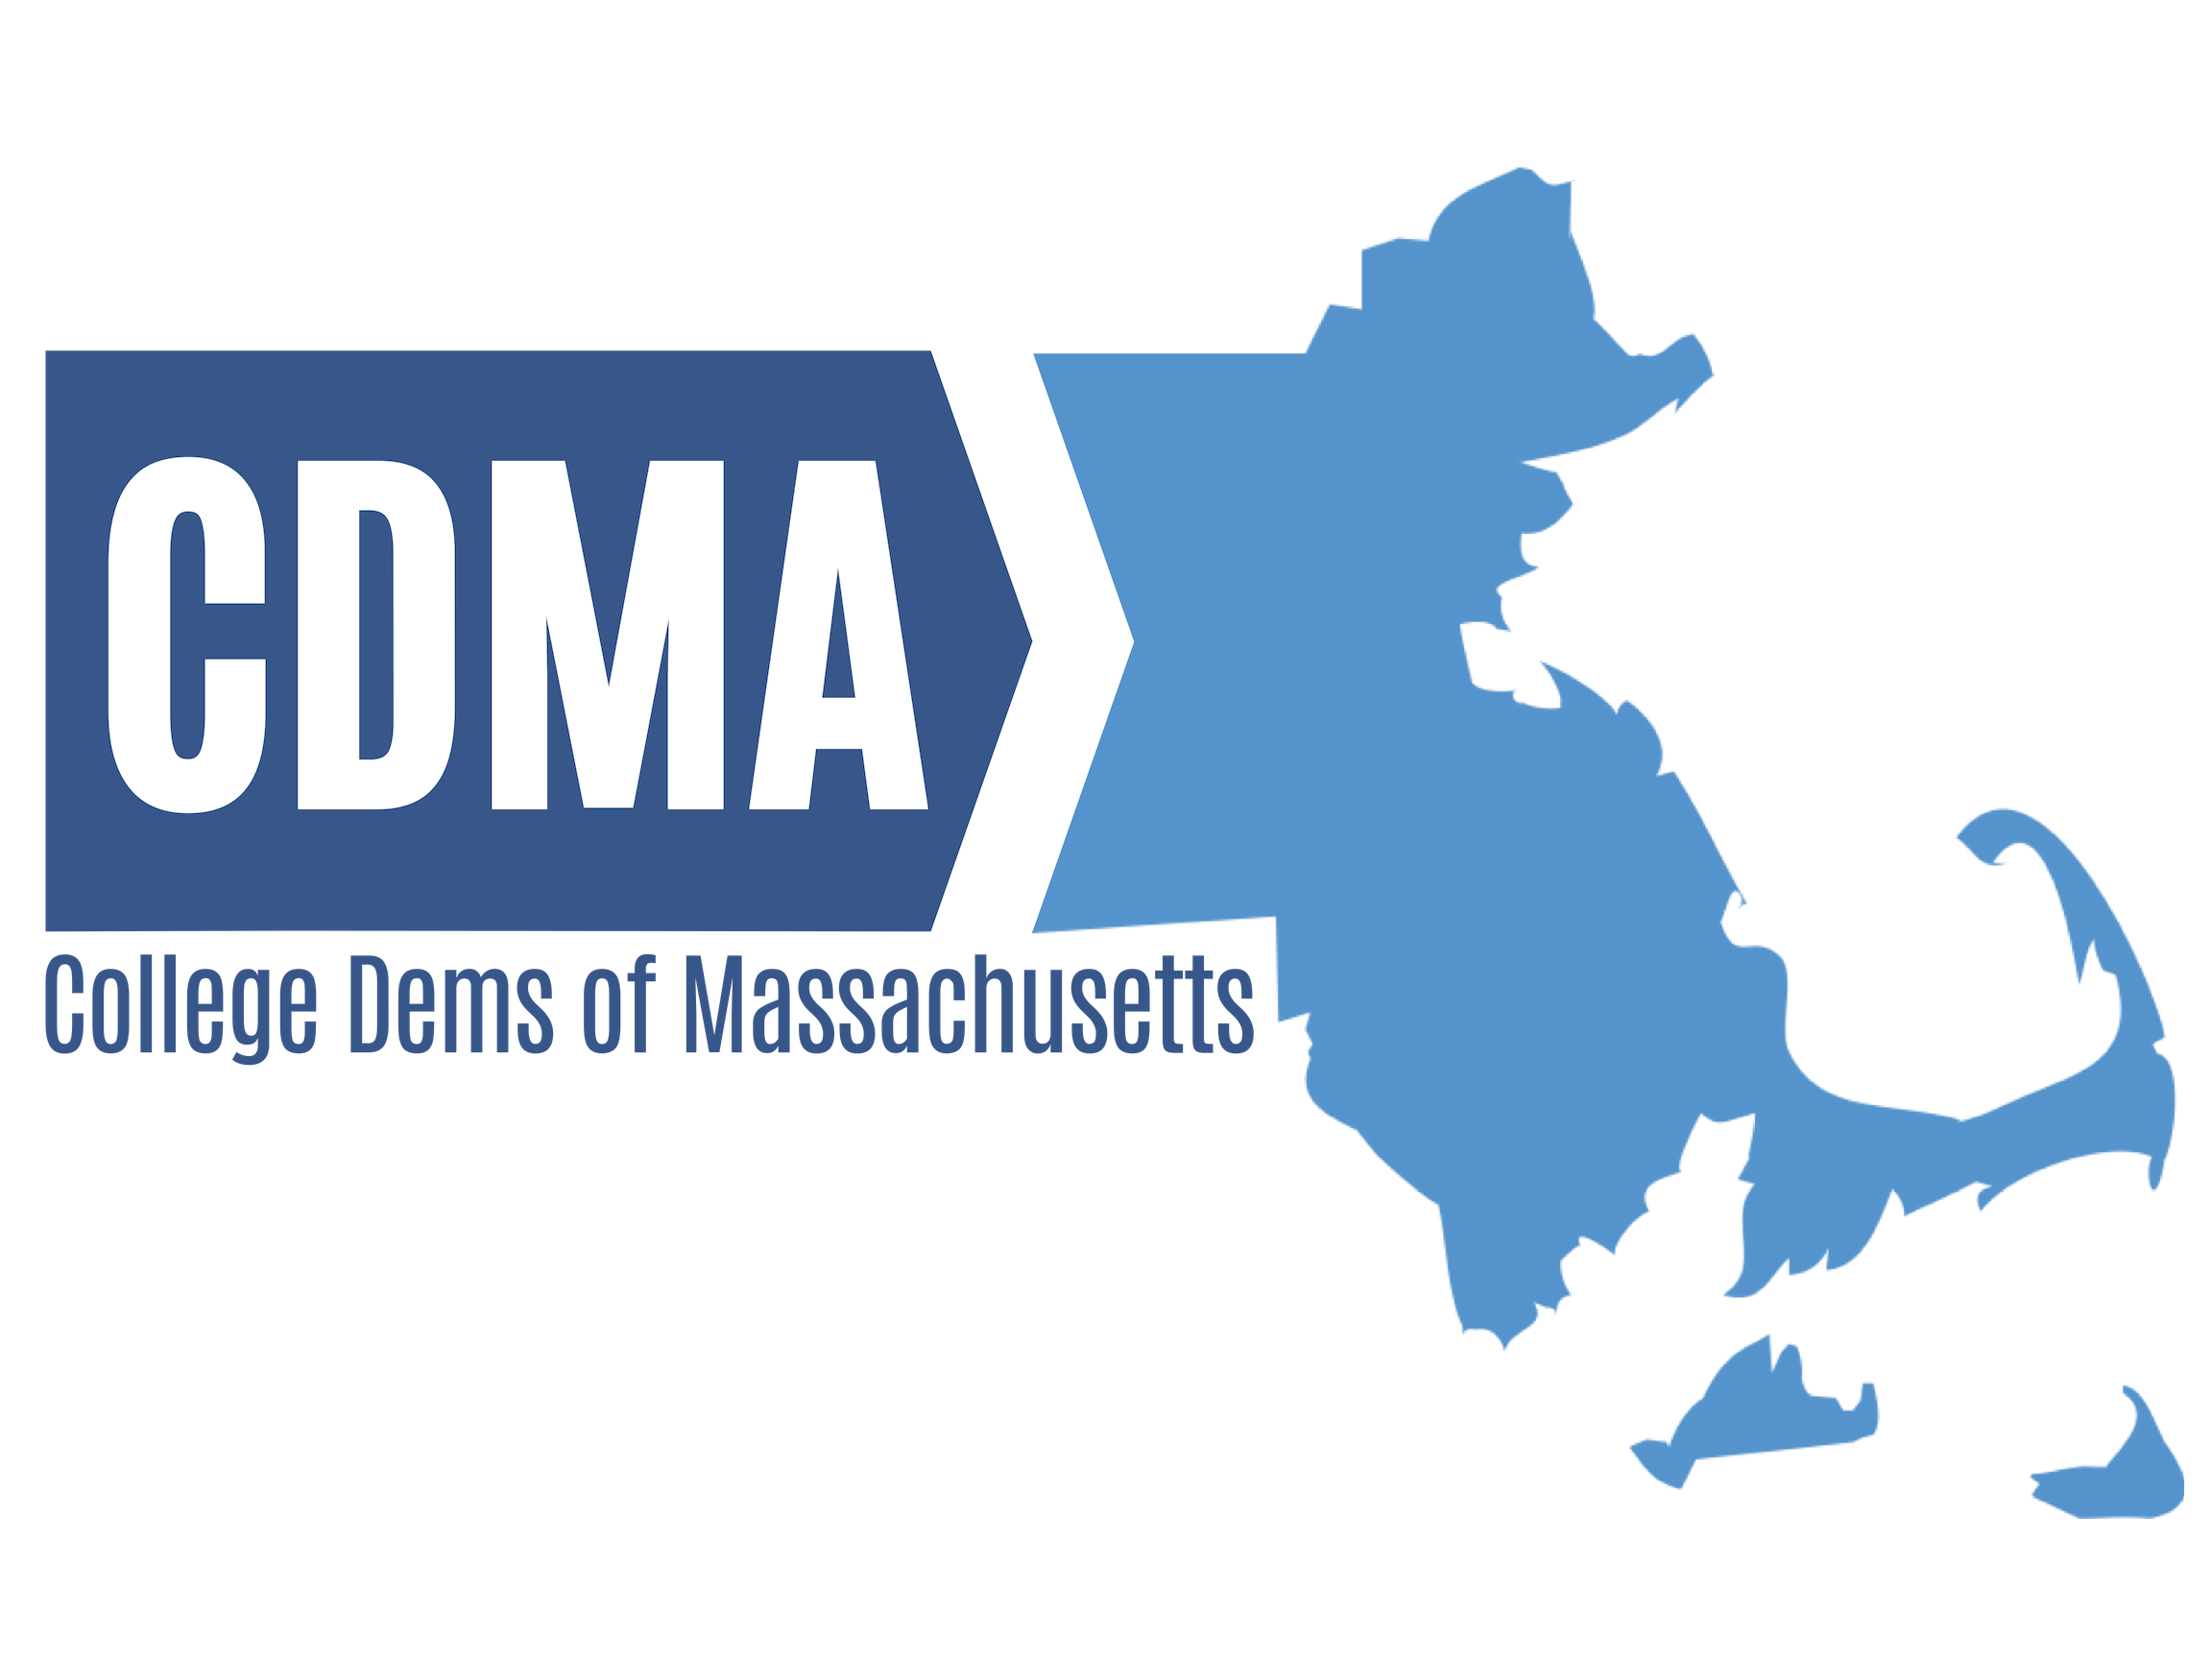 College Democrats of Massachusetts - Federal Account